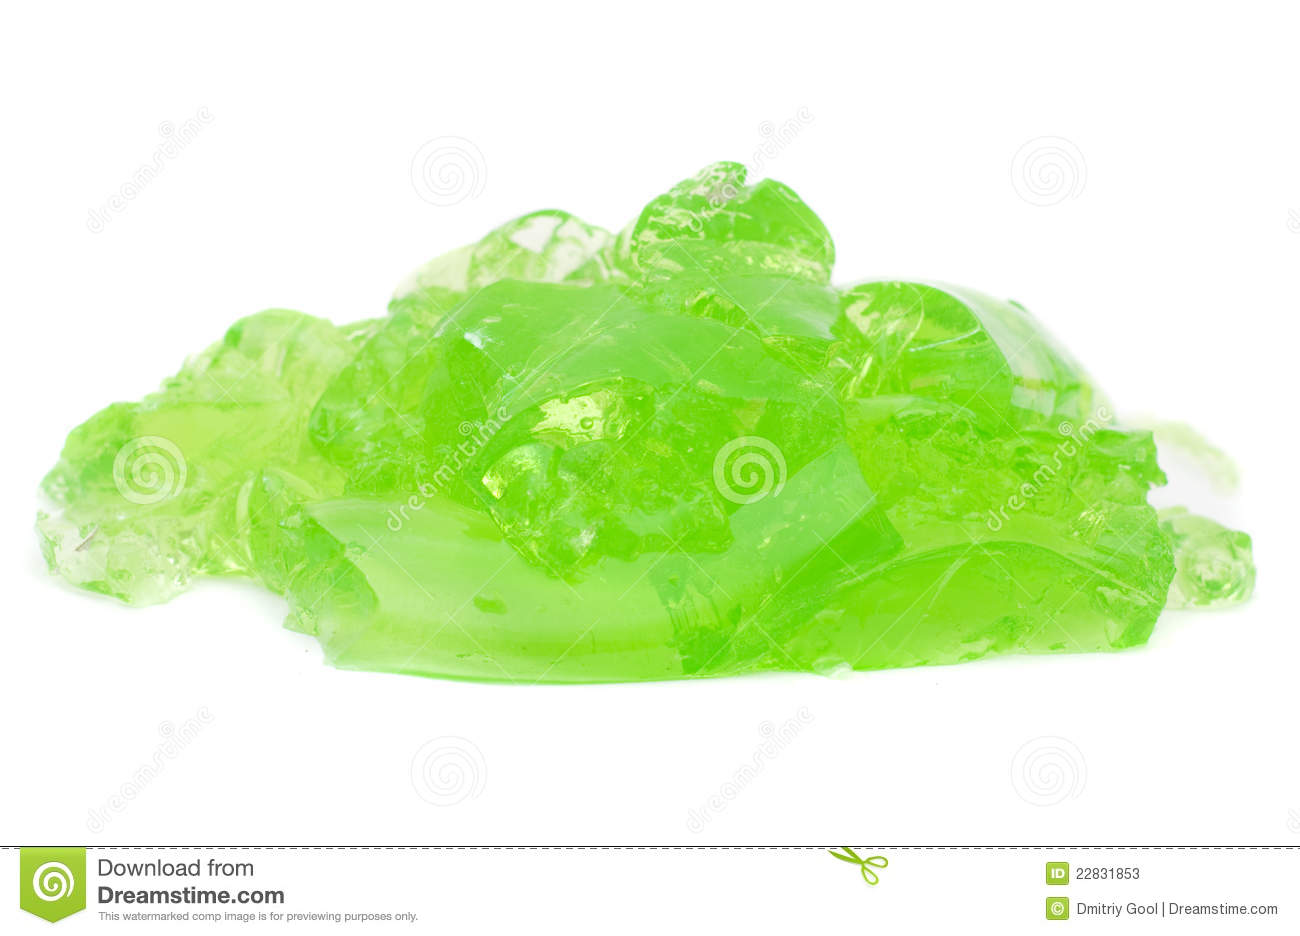 Model Raquel Reed Limecrimemakeup also How To Make Sex On The Beach Punch3641 further Search furthermore Cookie Crunch Cereal further 2812990 Kyrie Irving The Shot. on cartoon lime jello